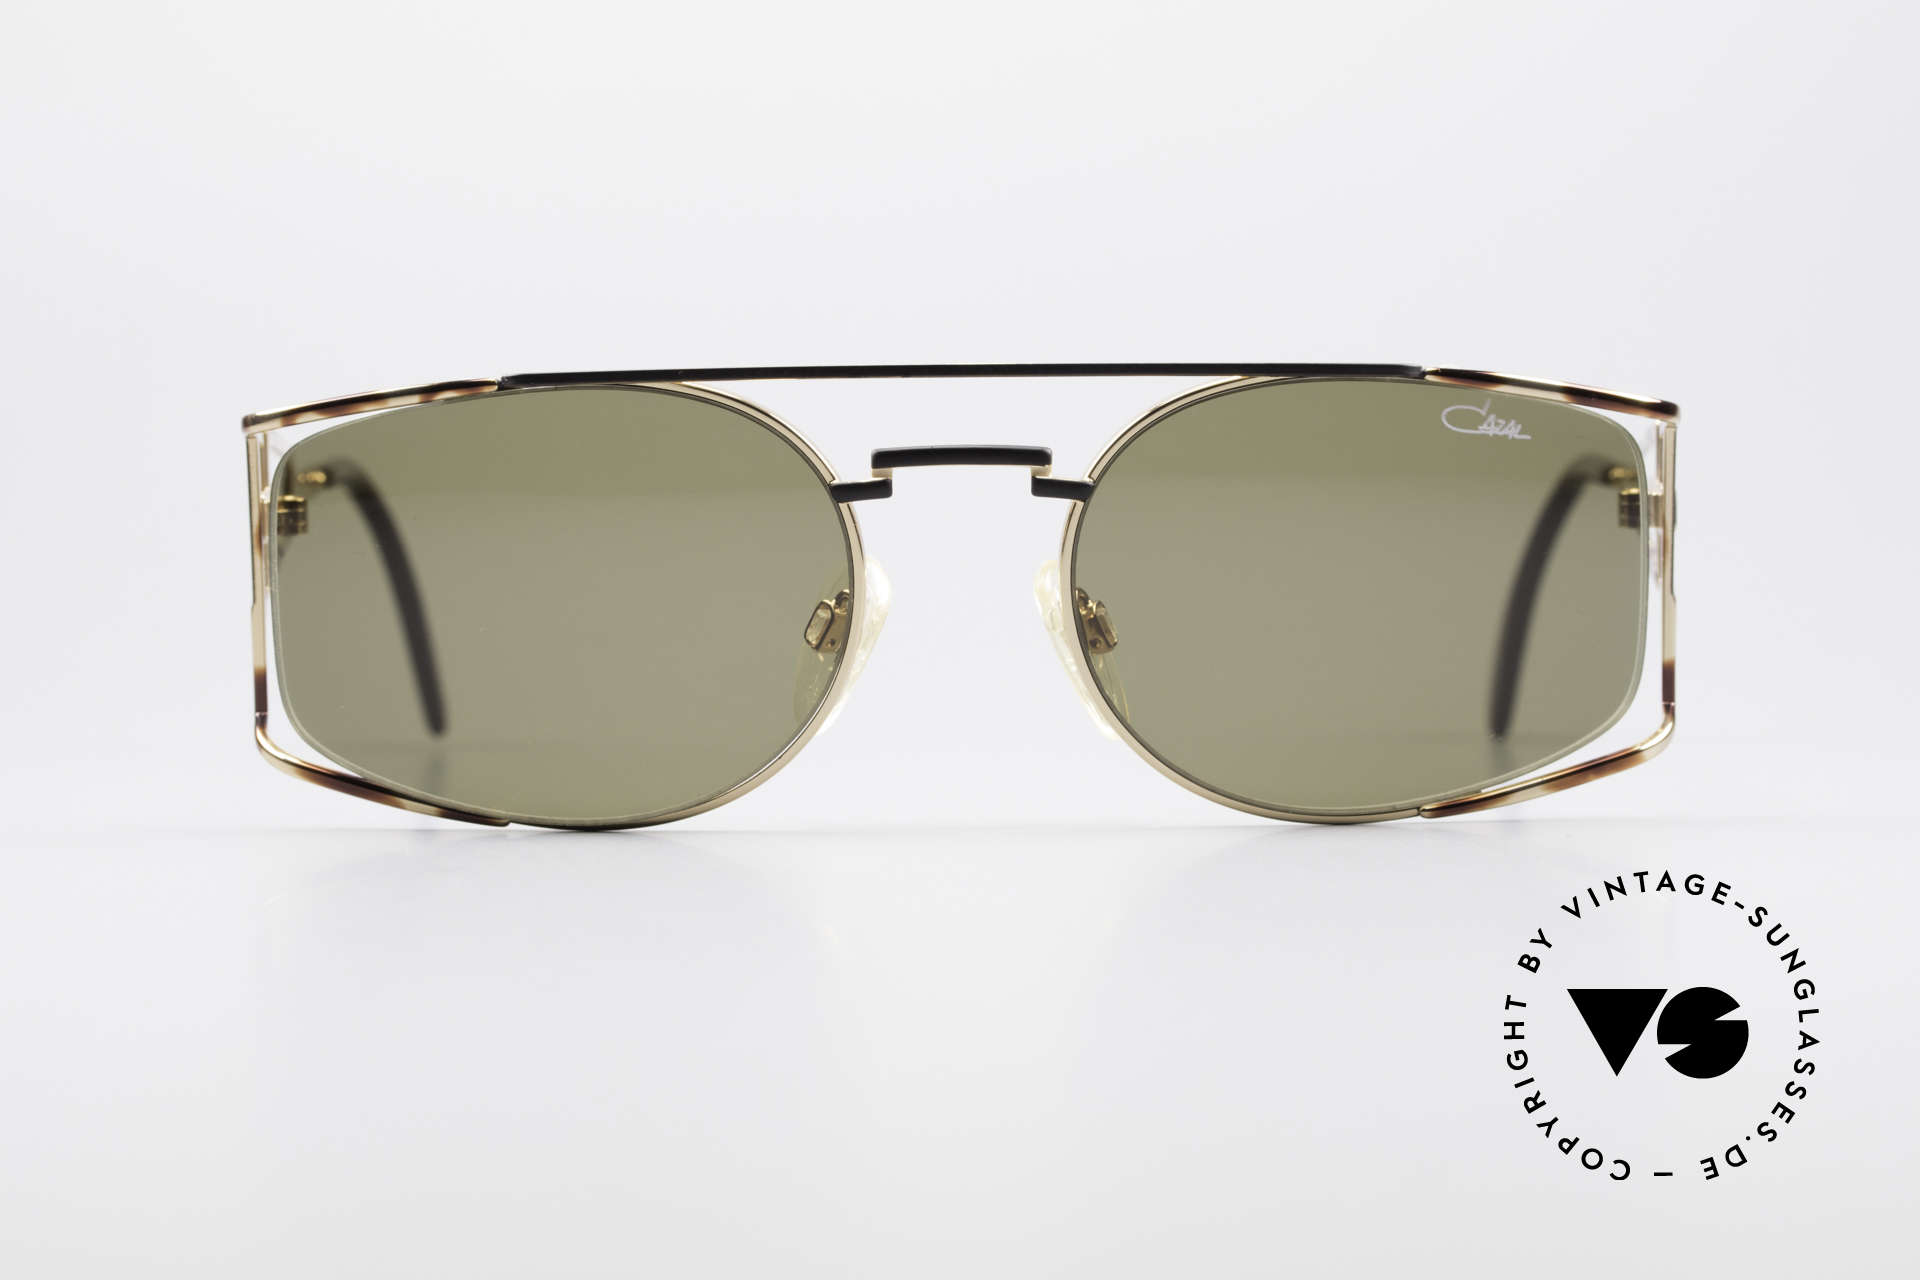 Cazal 967 Rare 90's Designer Sunglasses, great fit and weight distribution (1st class quality), Made for Men and Women